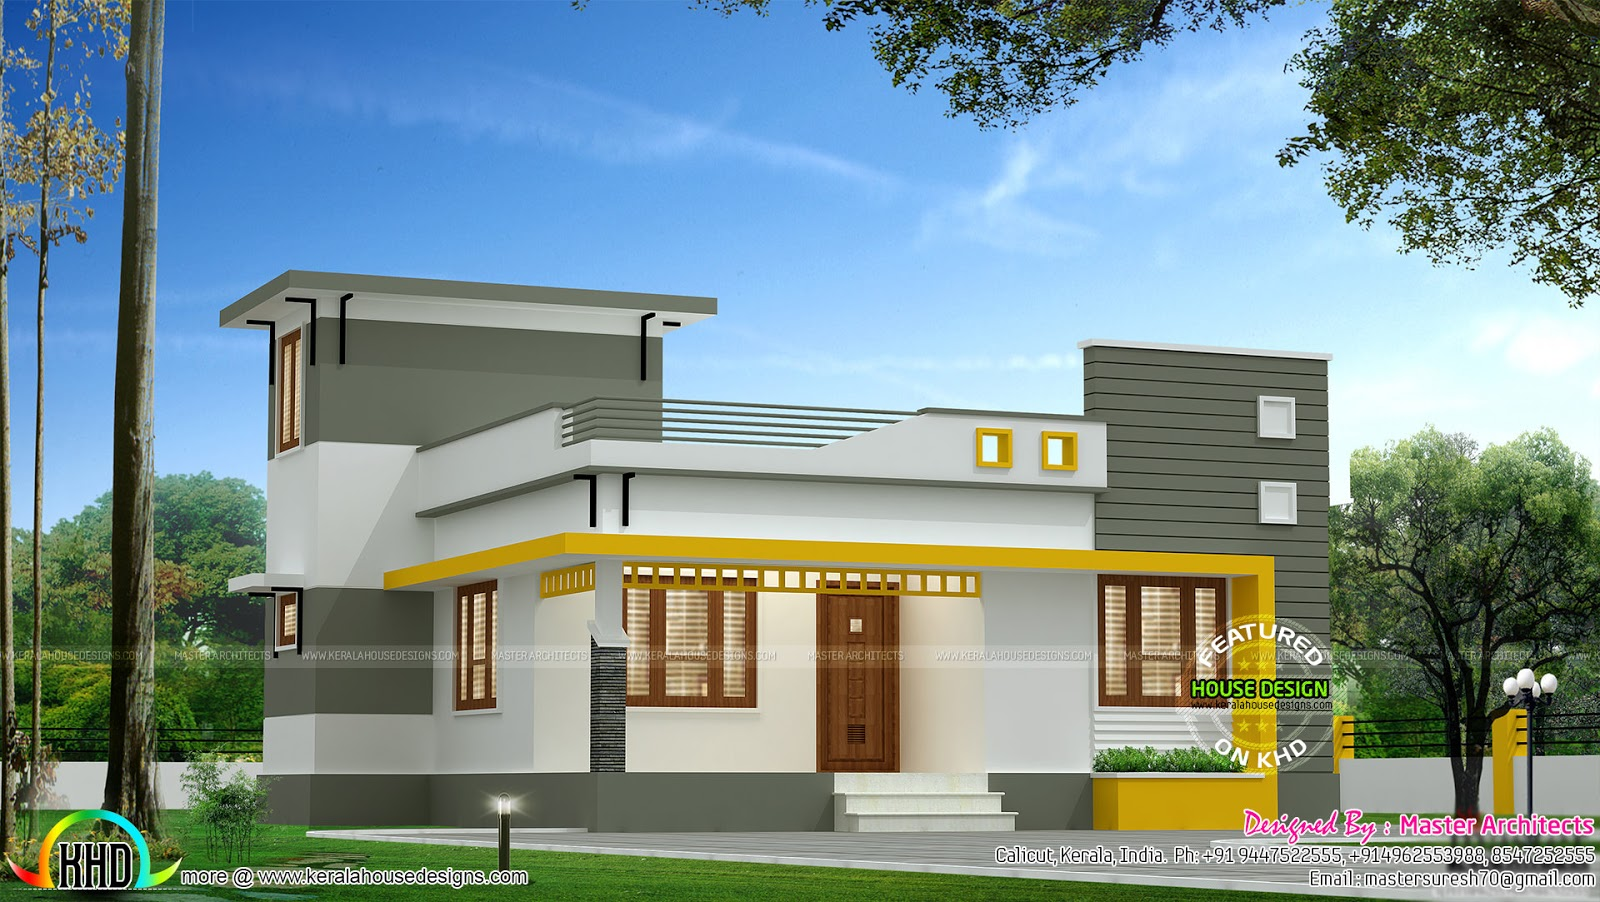 3 bedroom single floor modern architecture home kerala for Home designs single floor